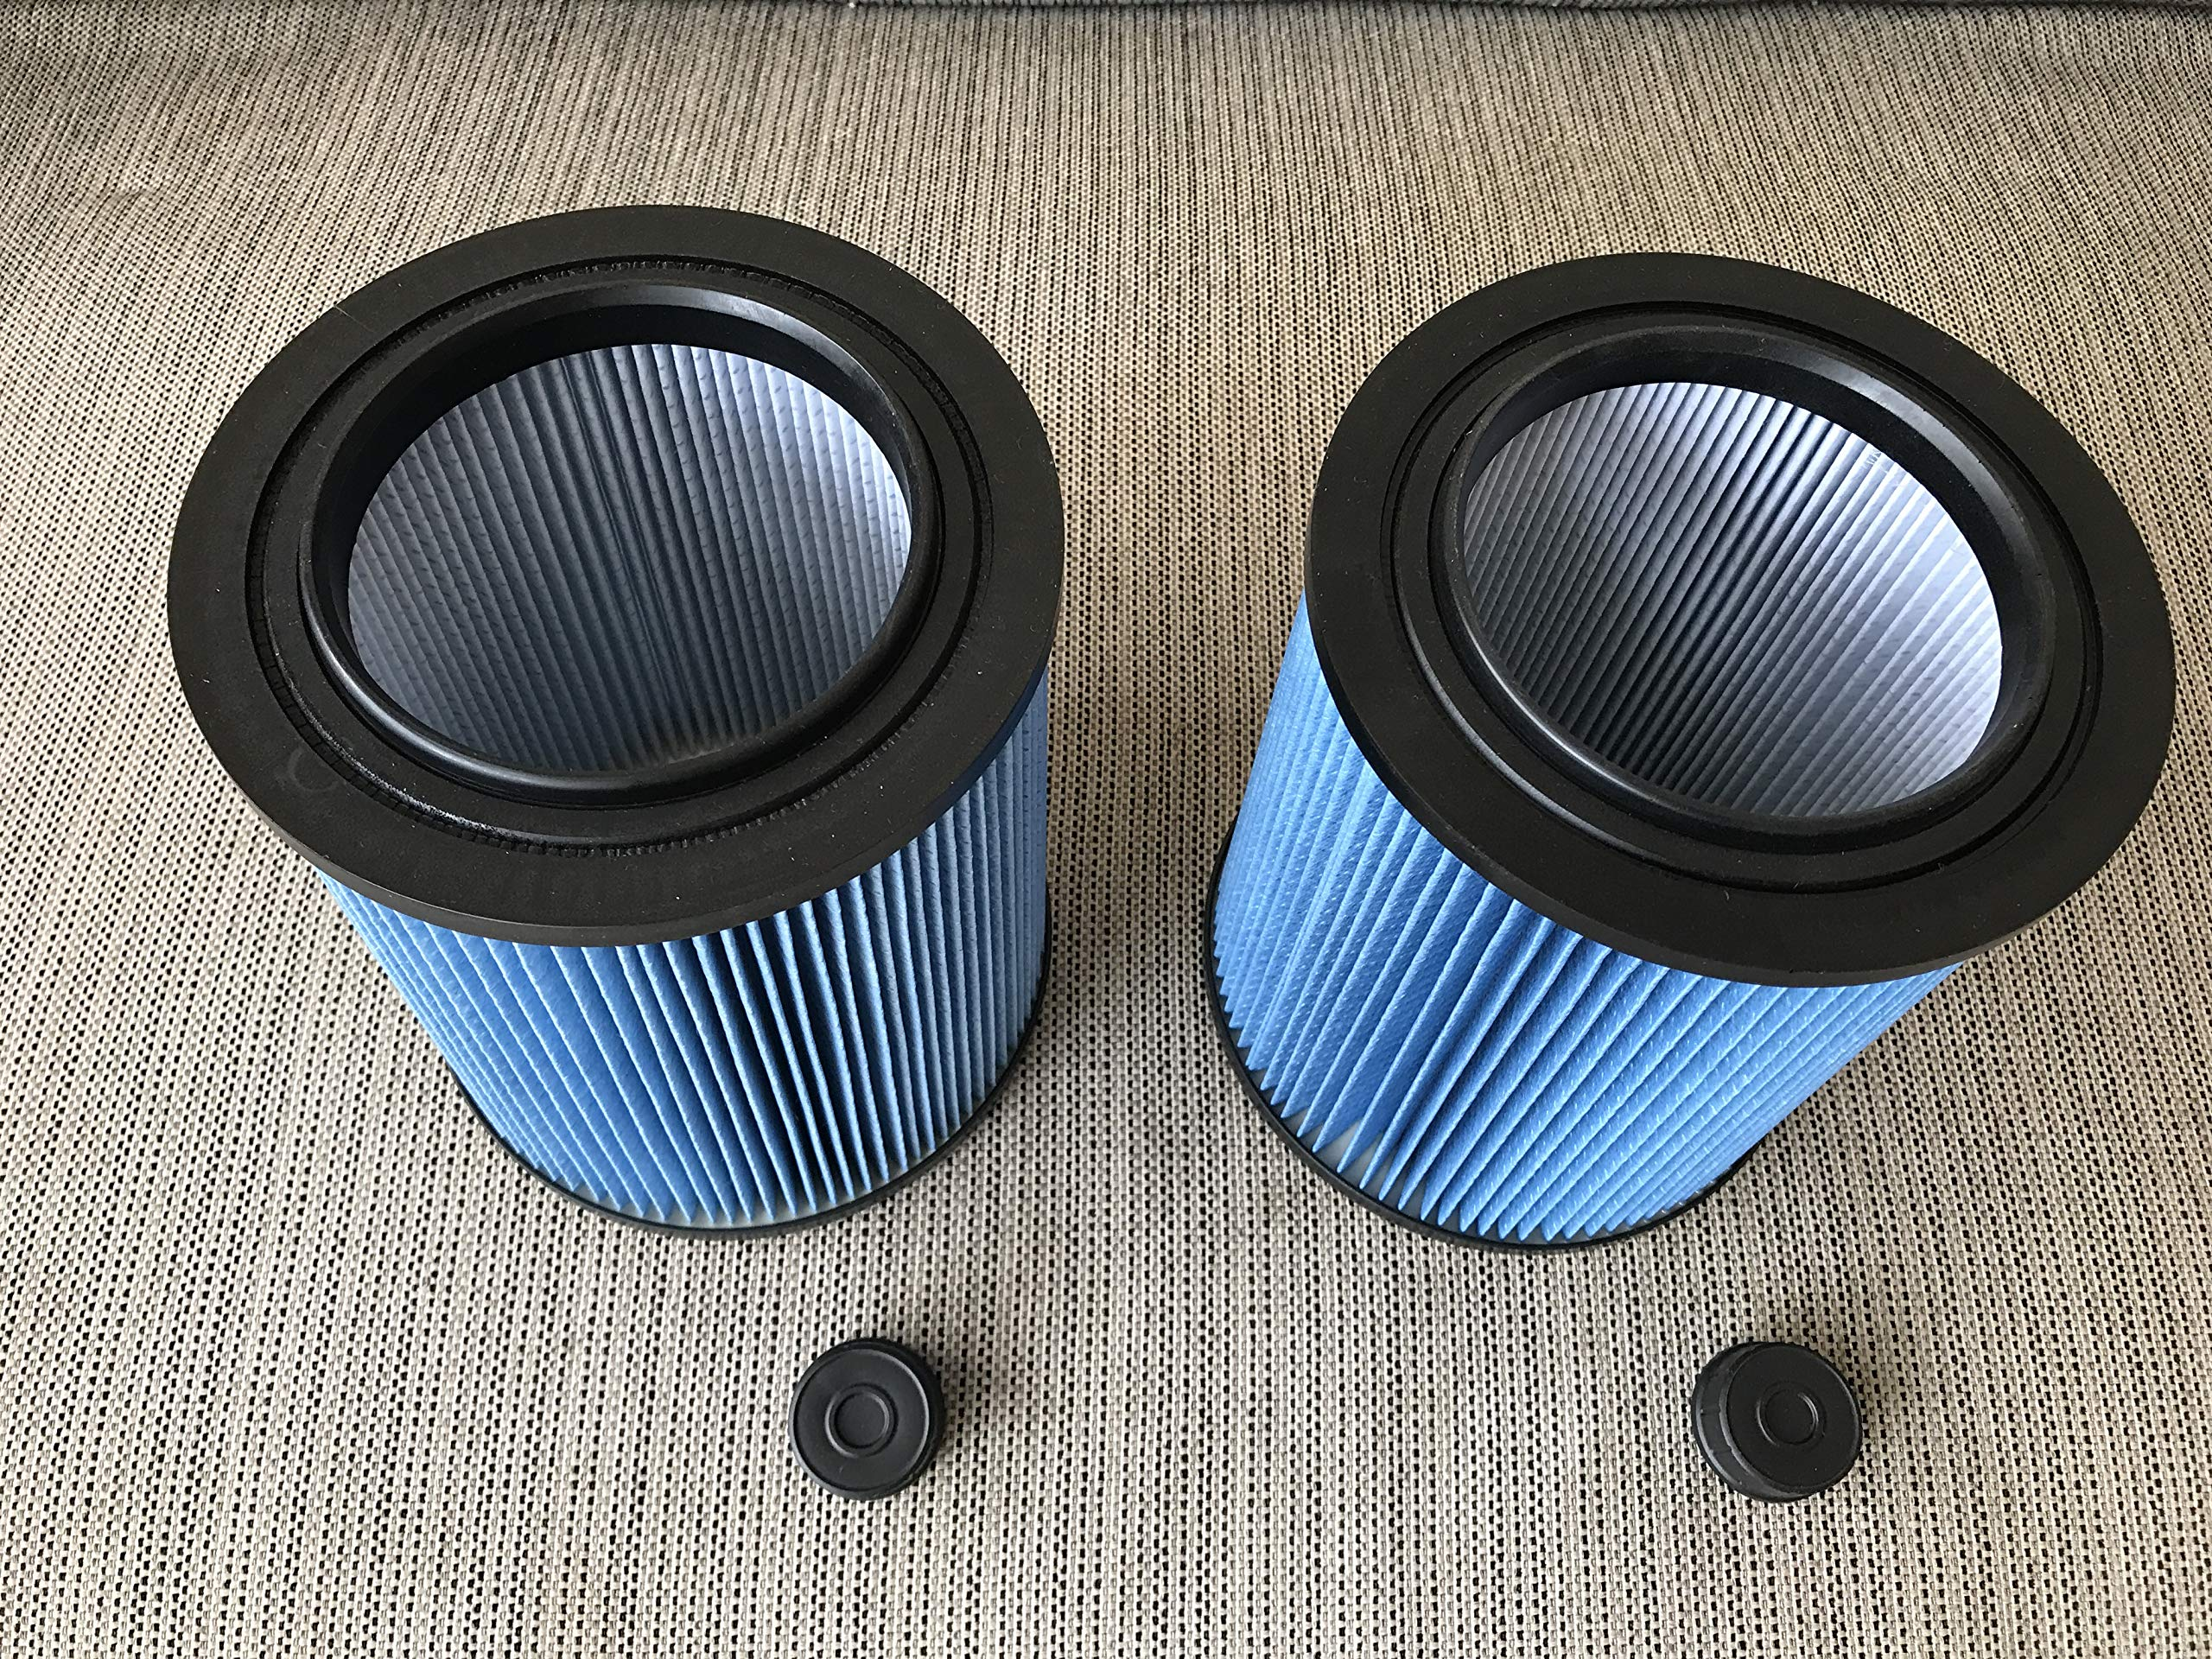 Craftsman 9-17907 Wet Dry Vaccum 2pcs/pk Filters Fine Dust Collection NEW!